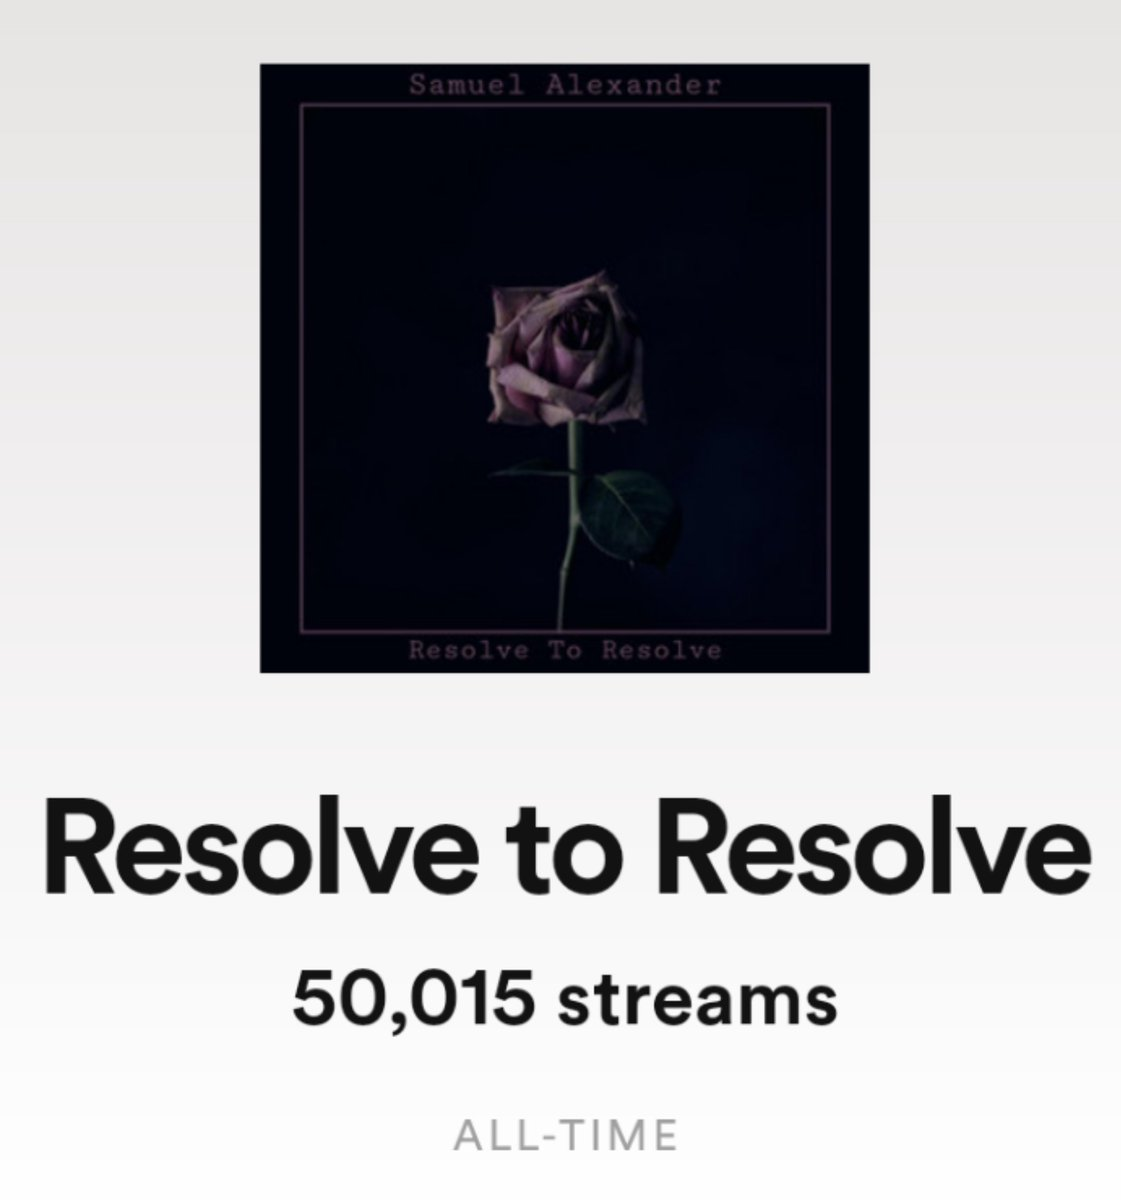 One track....50,000 STREAMS!!  When I started releasing music this year I never dreamt I would see anything like this!!   Thank you all for your incredible support!   #spotify #twitchstreamer #twitchmusic #futureofmusic https://t.co/maj8aoPjsO